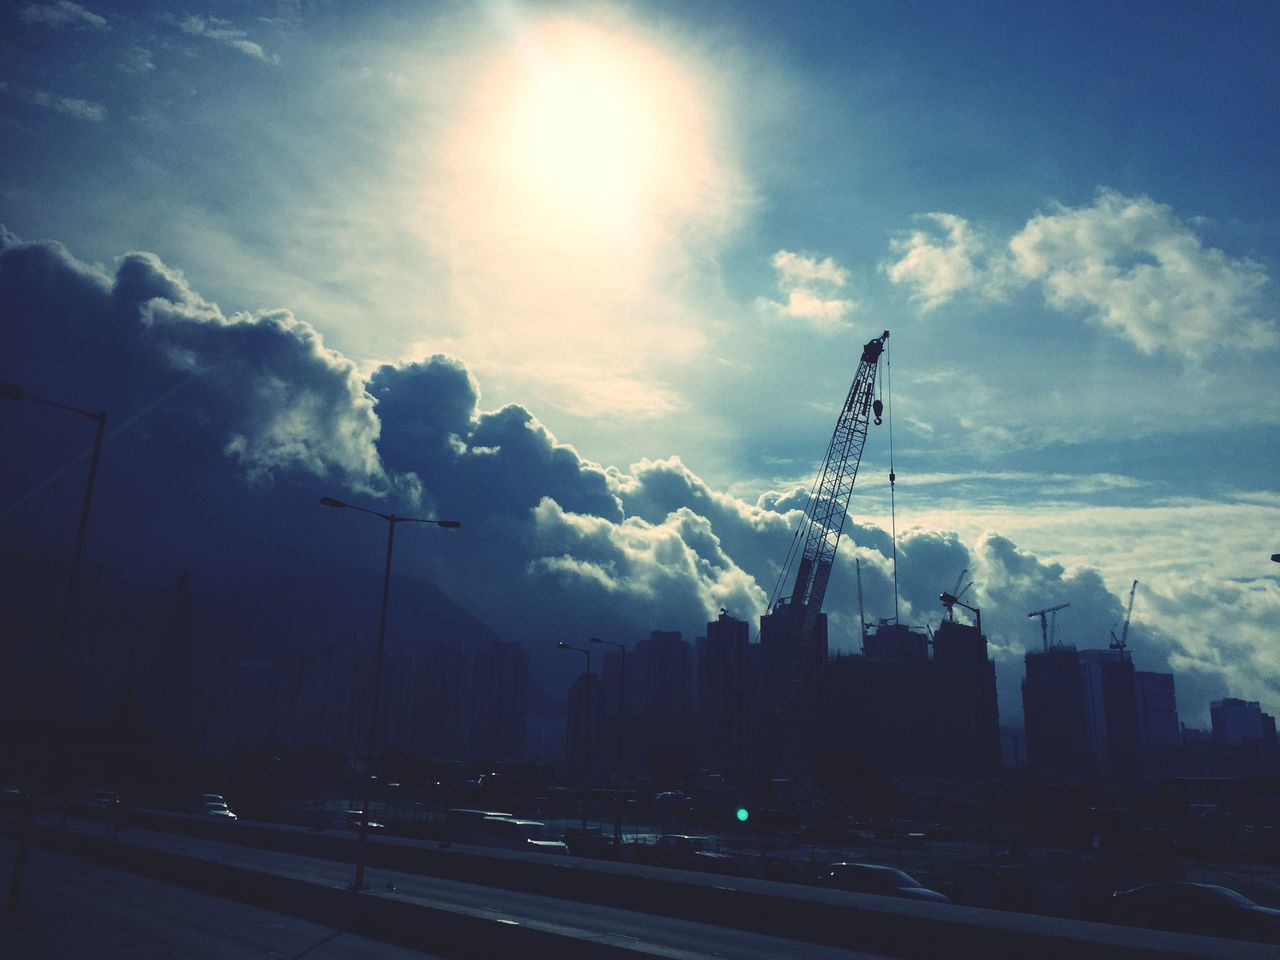 sky, cloud - sky, lens flare, outdoors, architecture, built structure, sunlight, building exterior, smoke stack, no people, factory, industry, road, day, city, nature